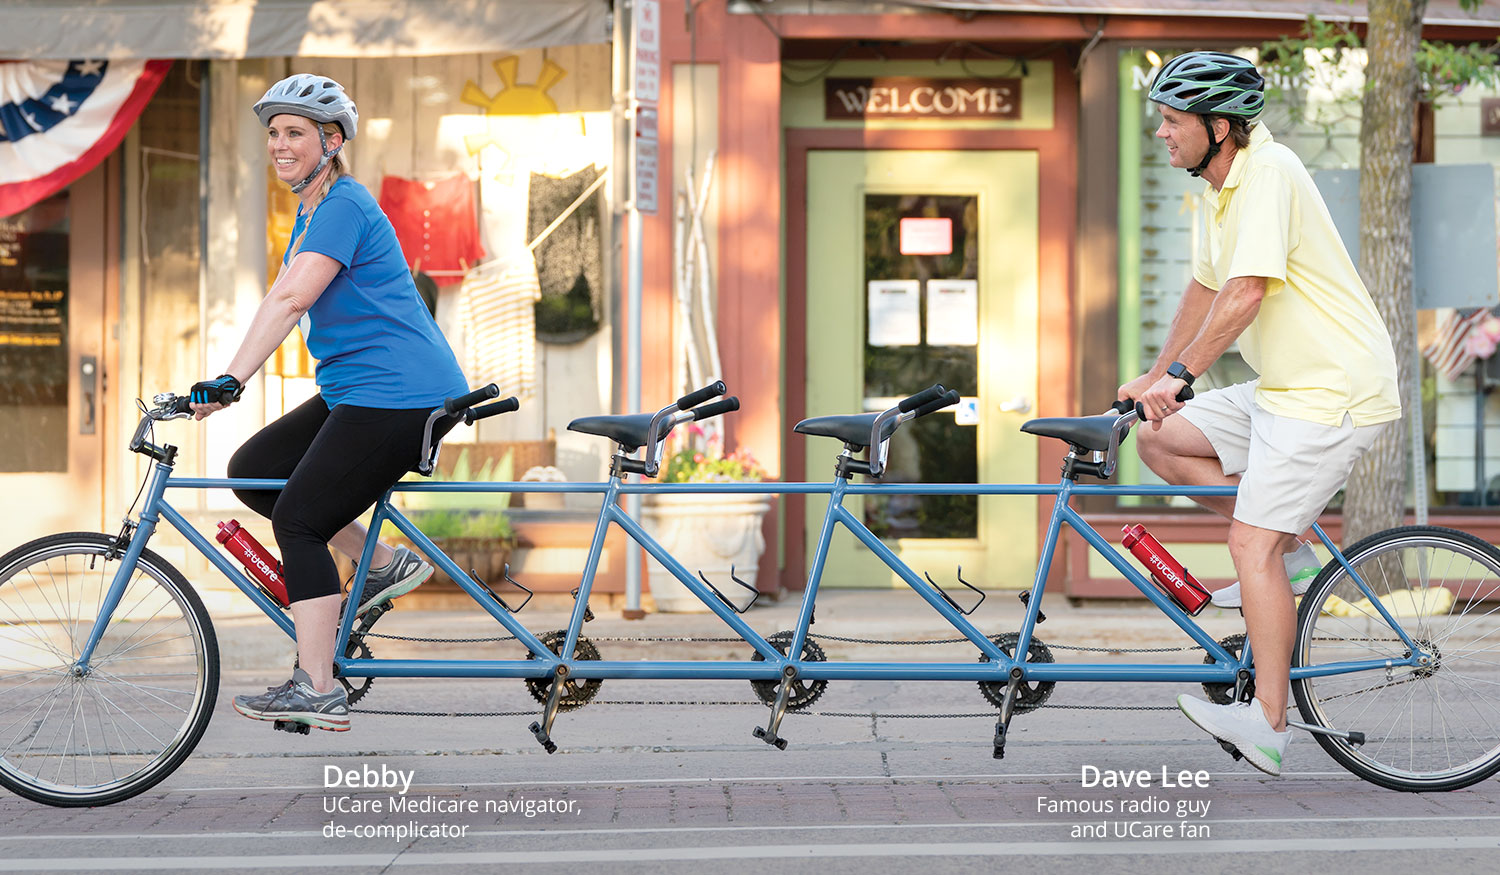 Photo of Debby, UCare Medicare navigator, and Dave Lee, famous radio guy, on bike